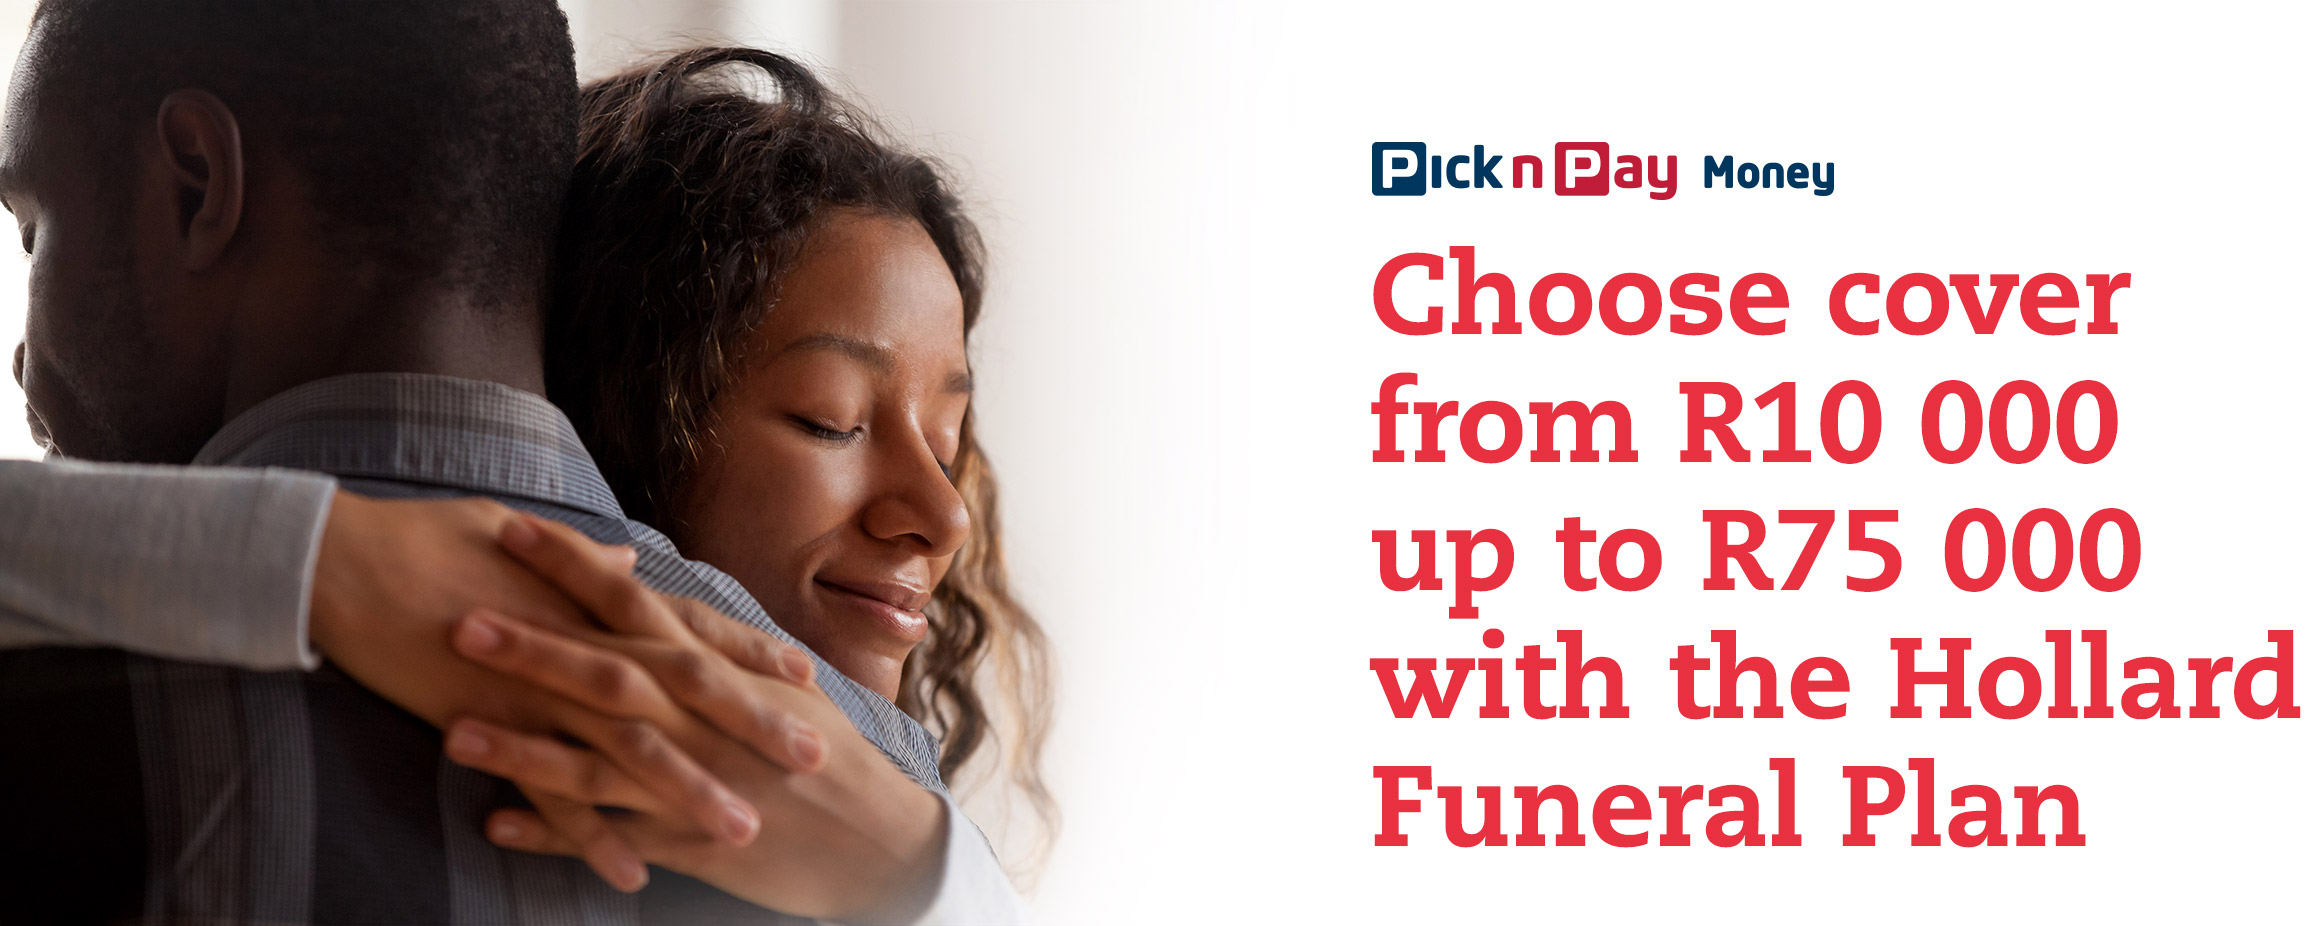 Choose cover from R10 000 up to R75000 with the Hollard Funeral plan